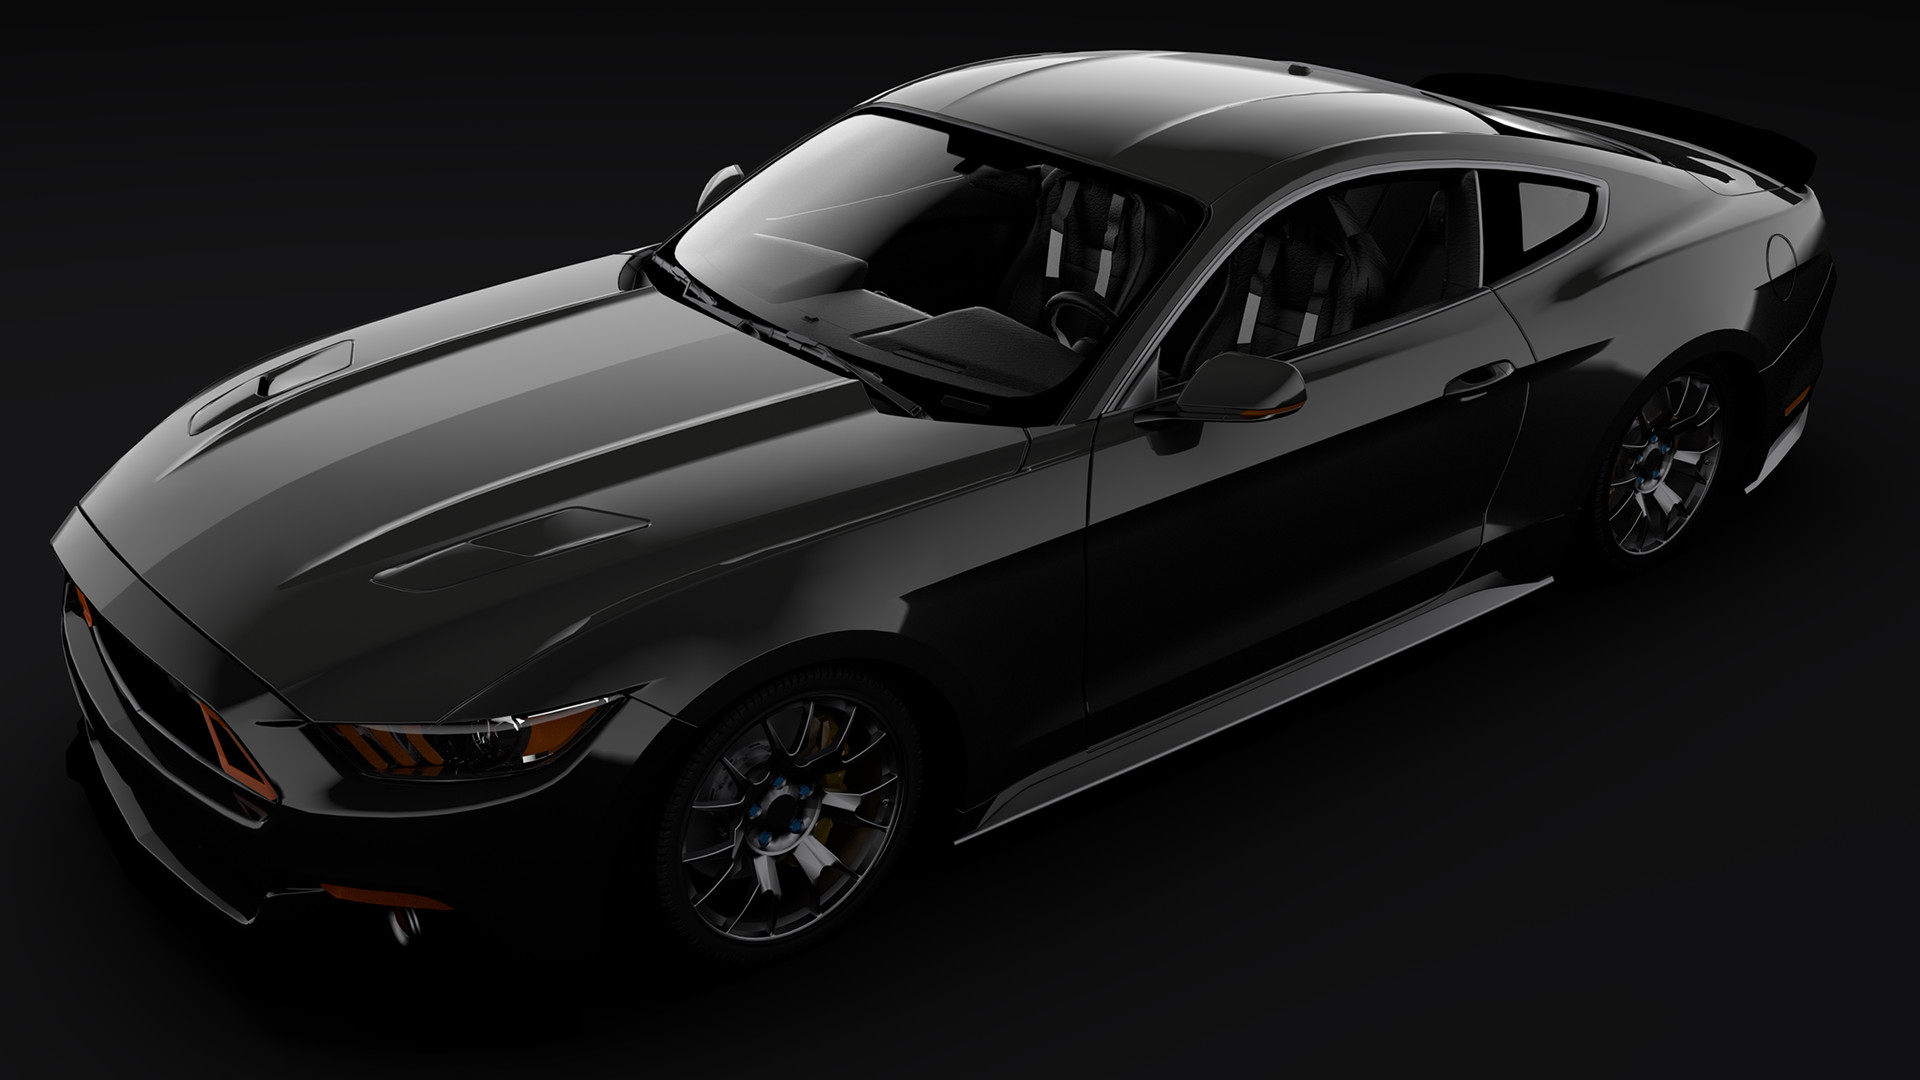 David stingl fordmustang2015righttopdownsized